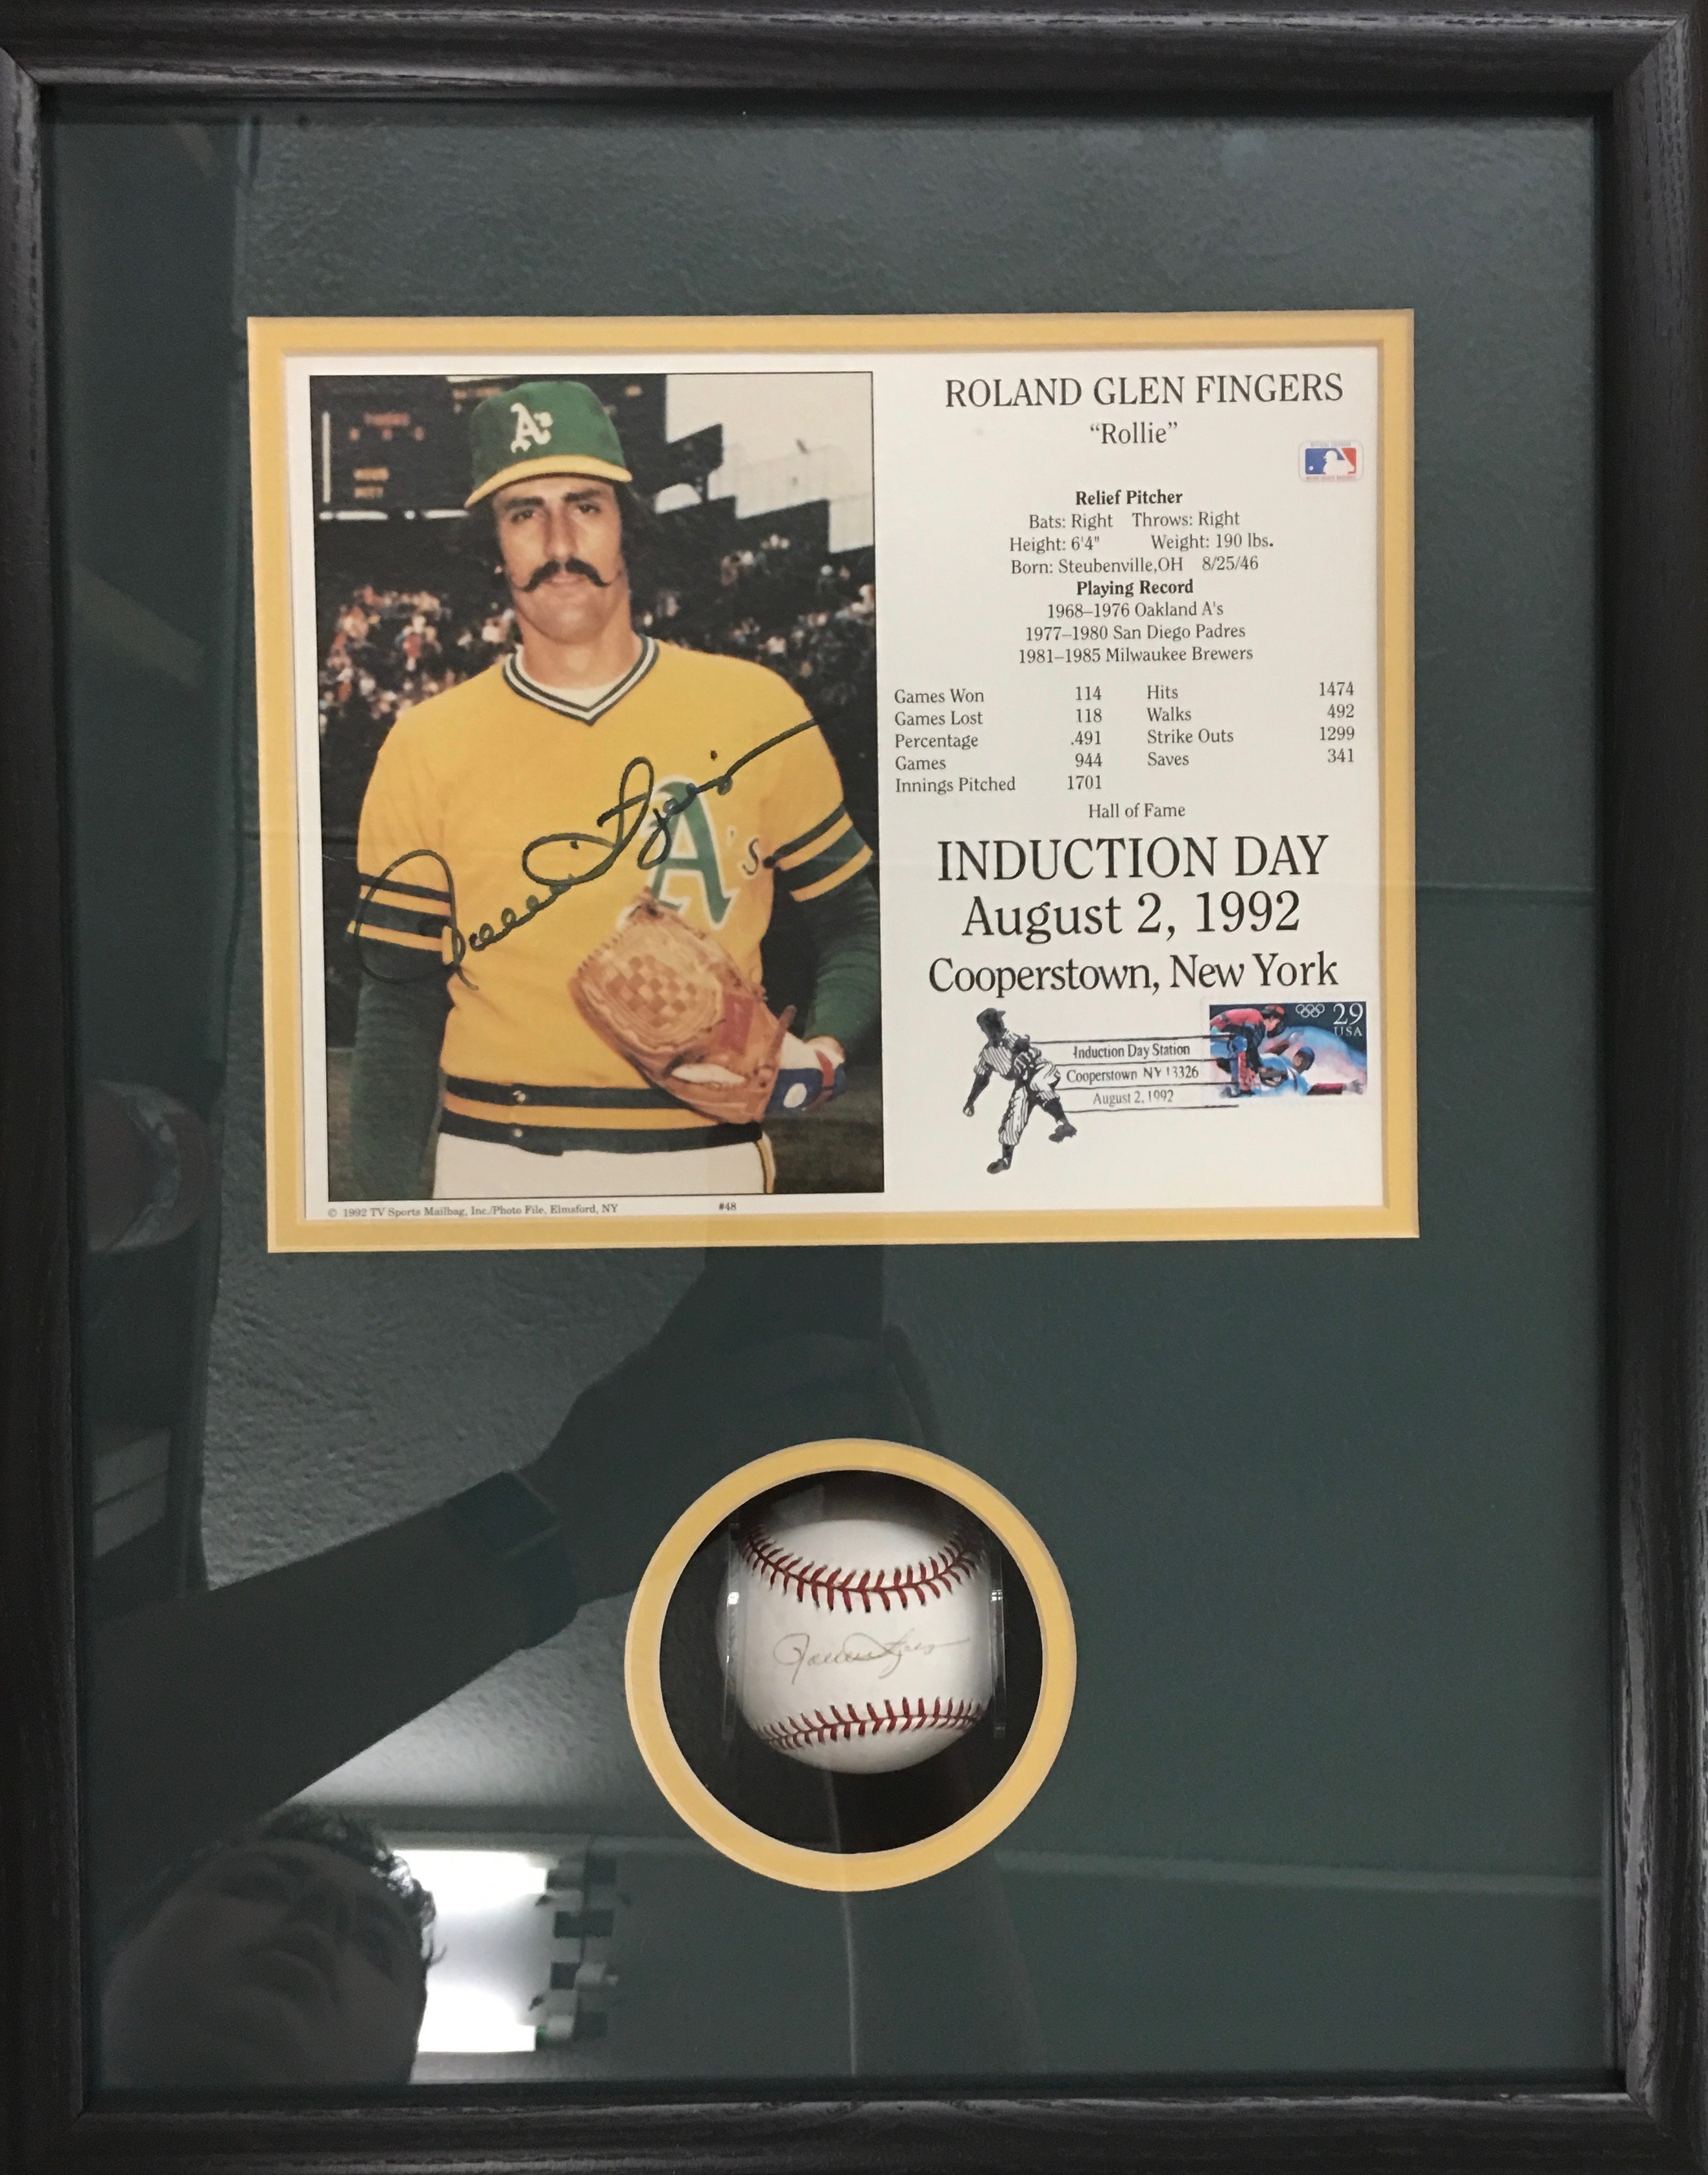 Rollie fingers signed baseball shadowbox